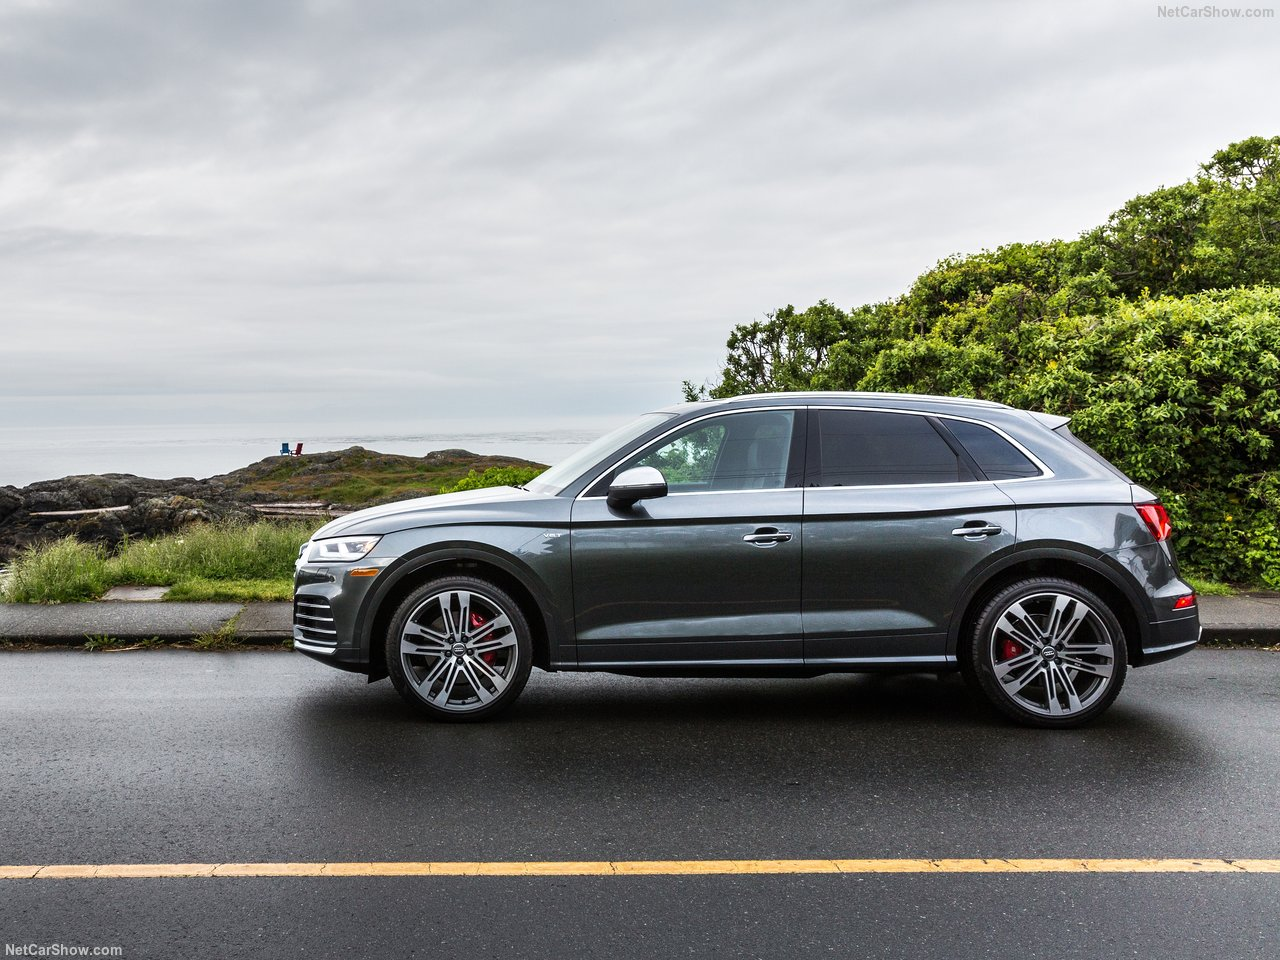 Audi Sq5 Picture 179062 Audi Photo Gallery Carsbase Com